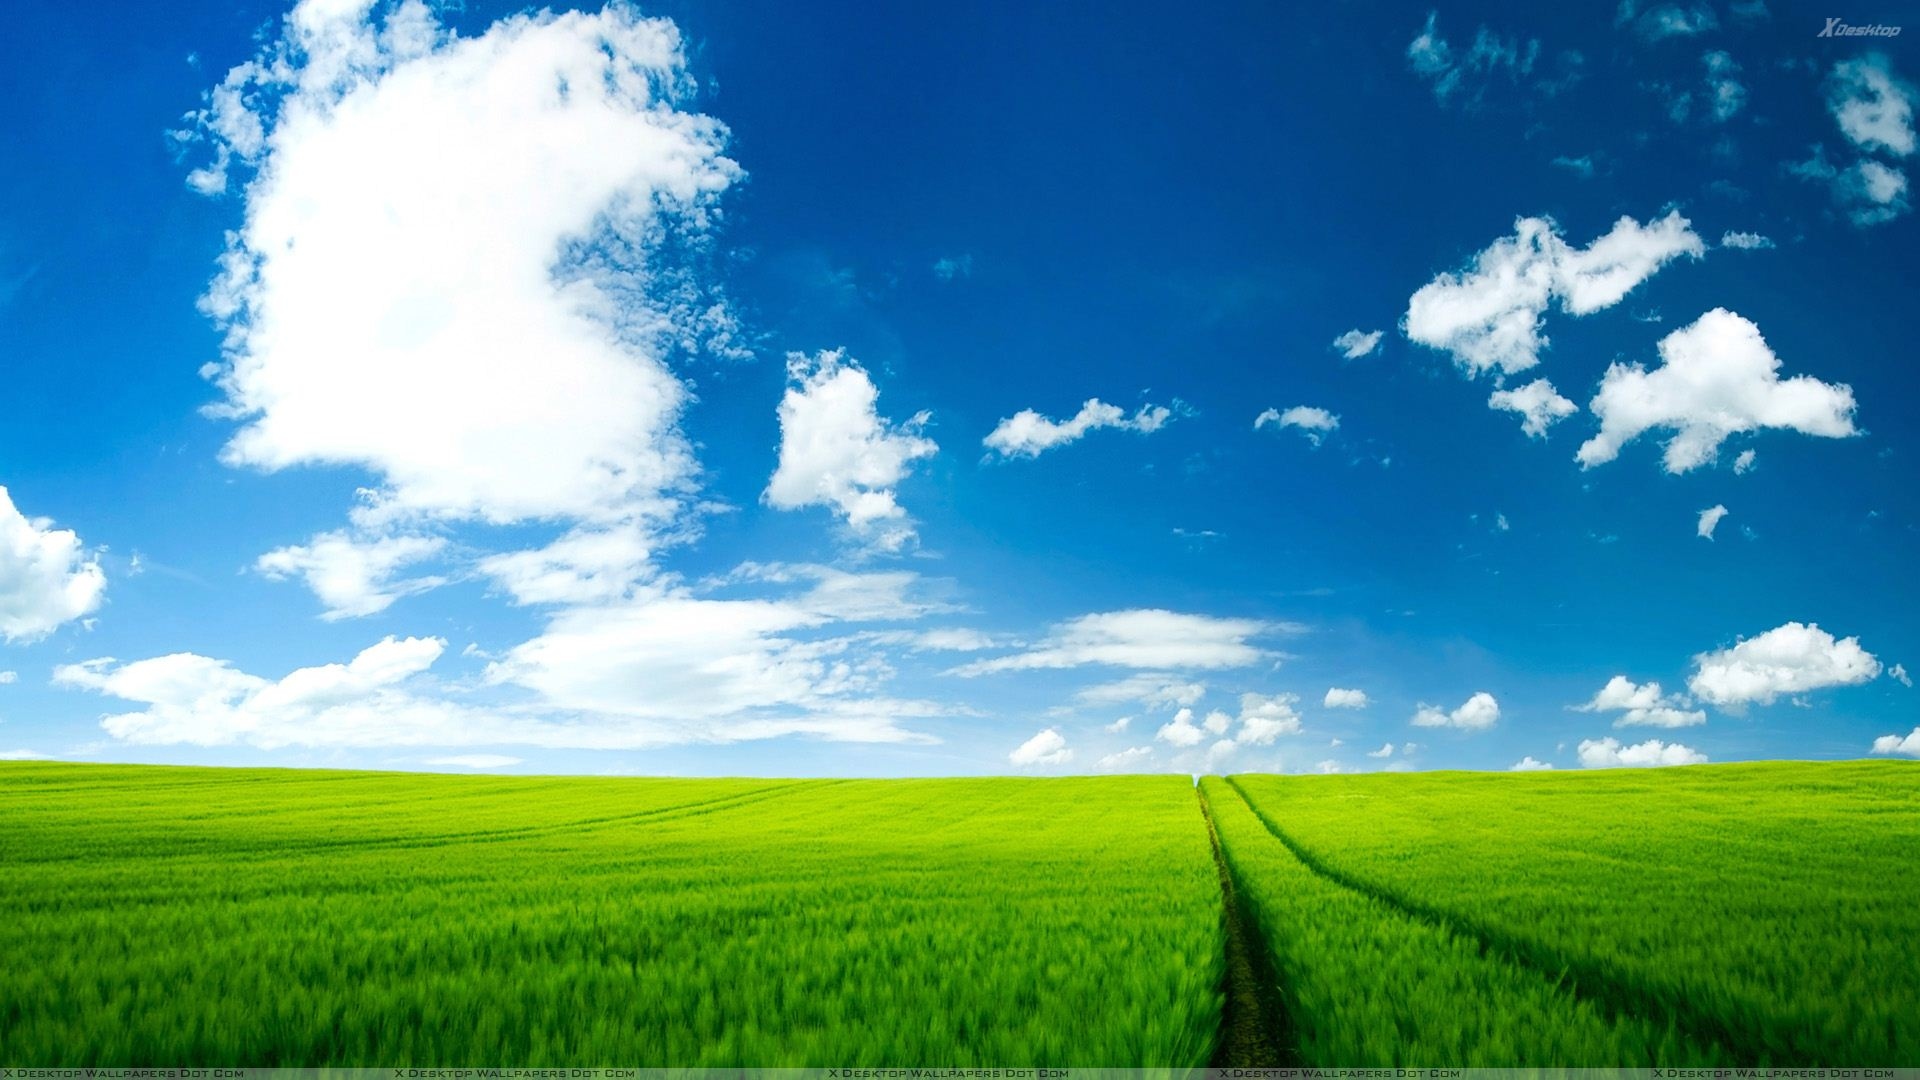 You Are Viewing Wallpaper Titled Summer Green Field Scenery